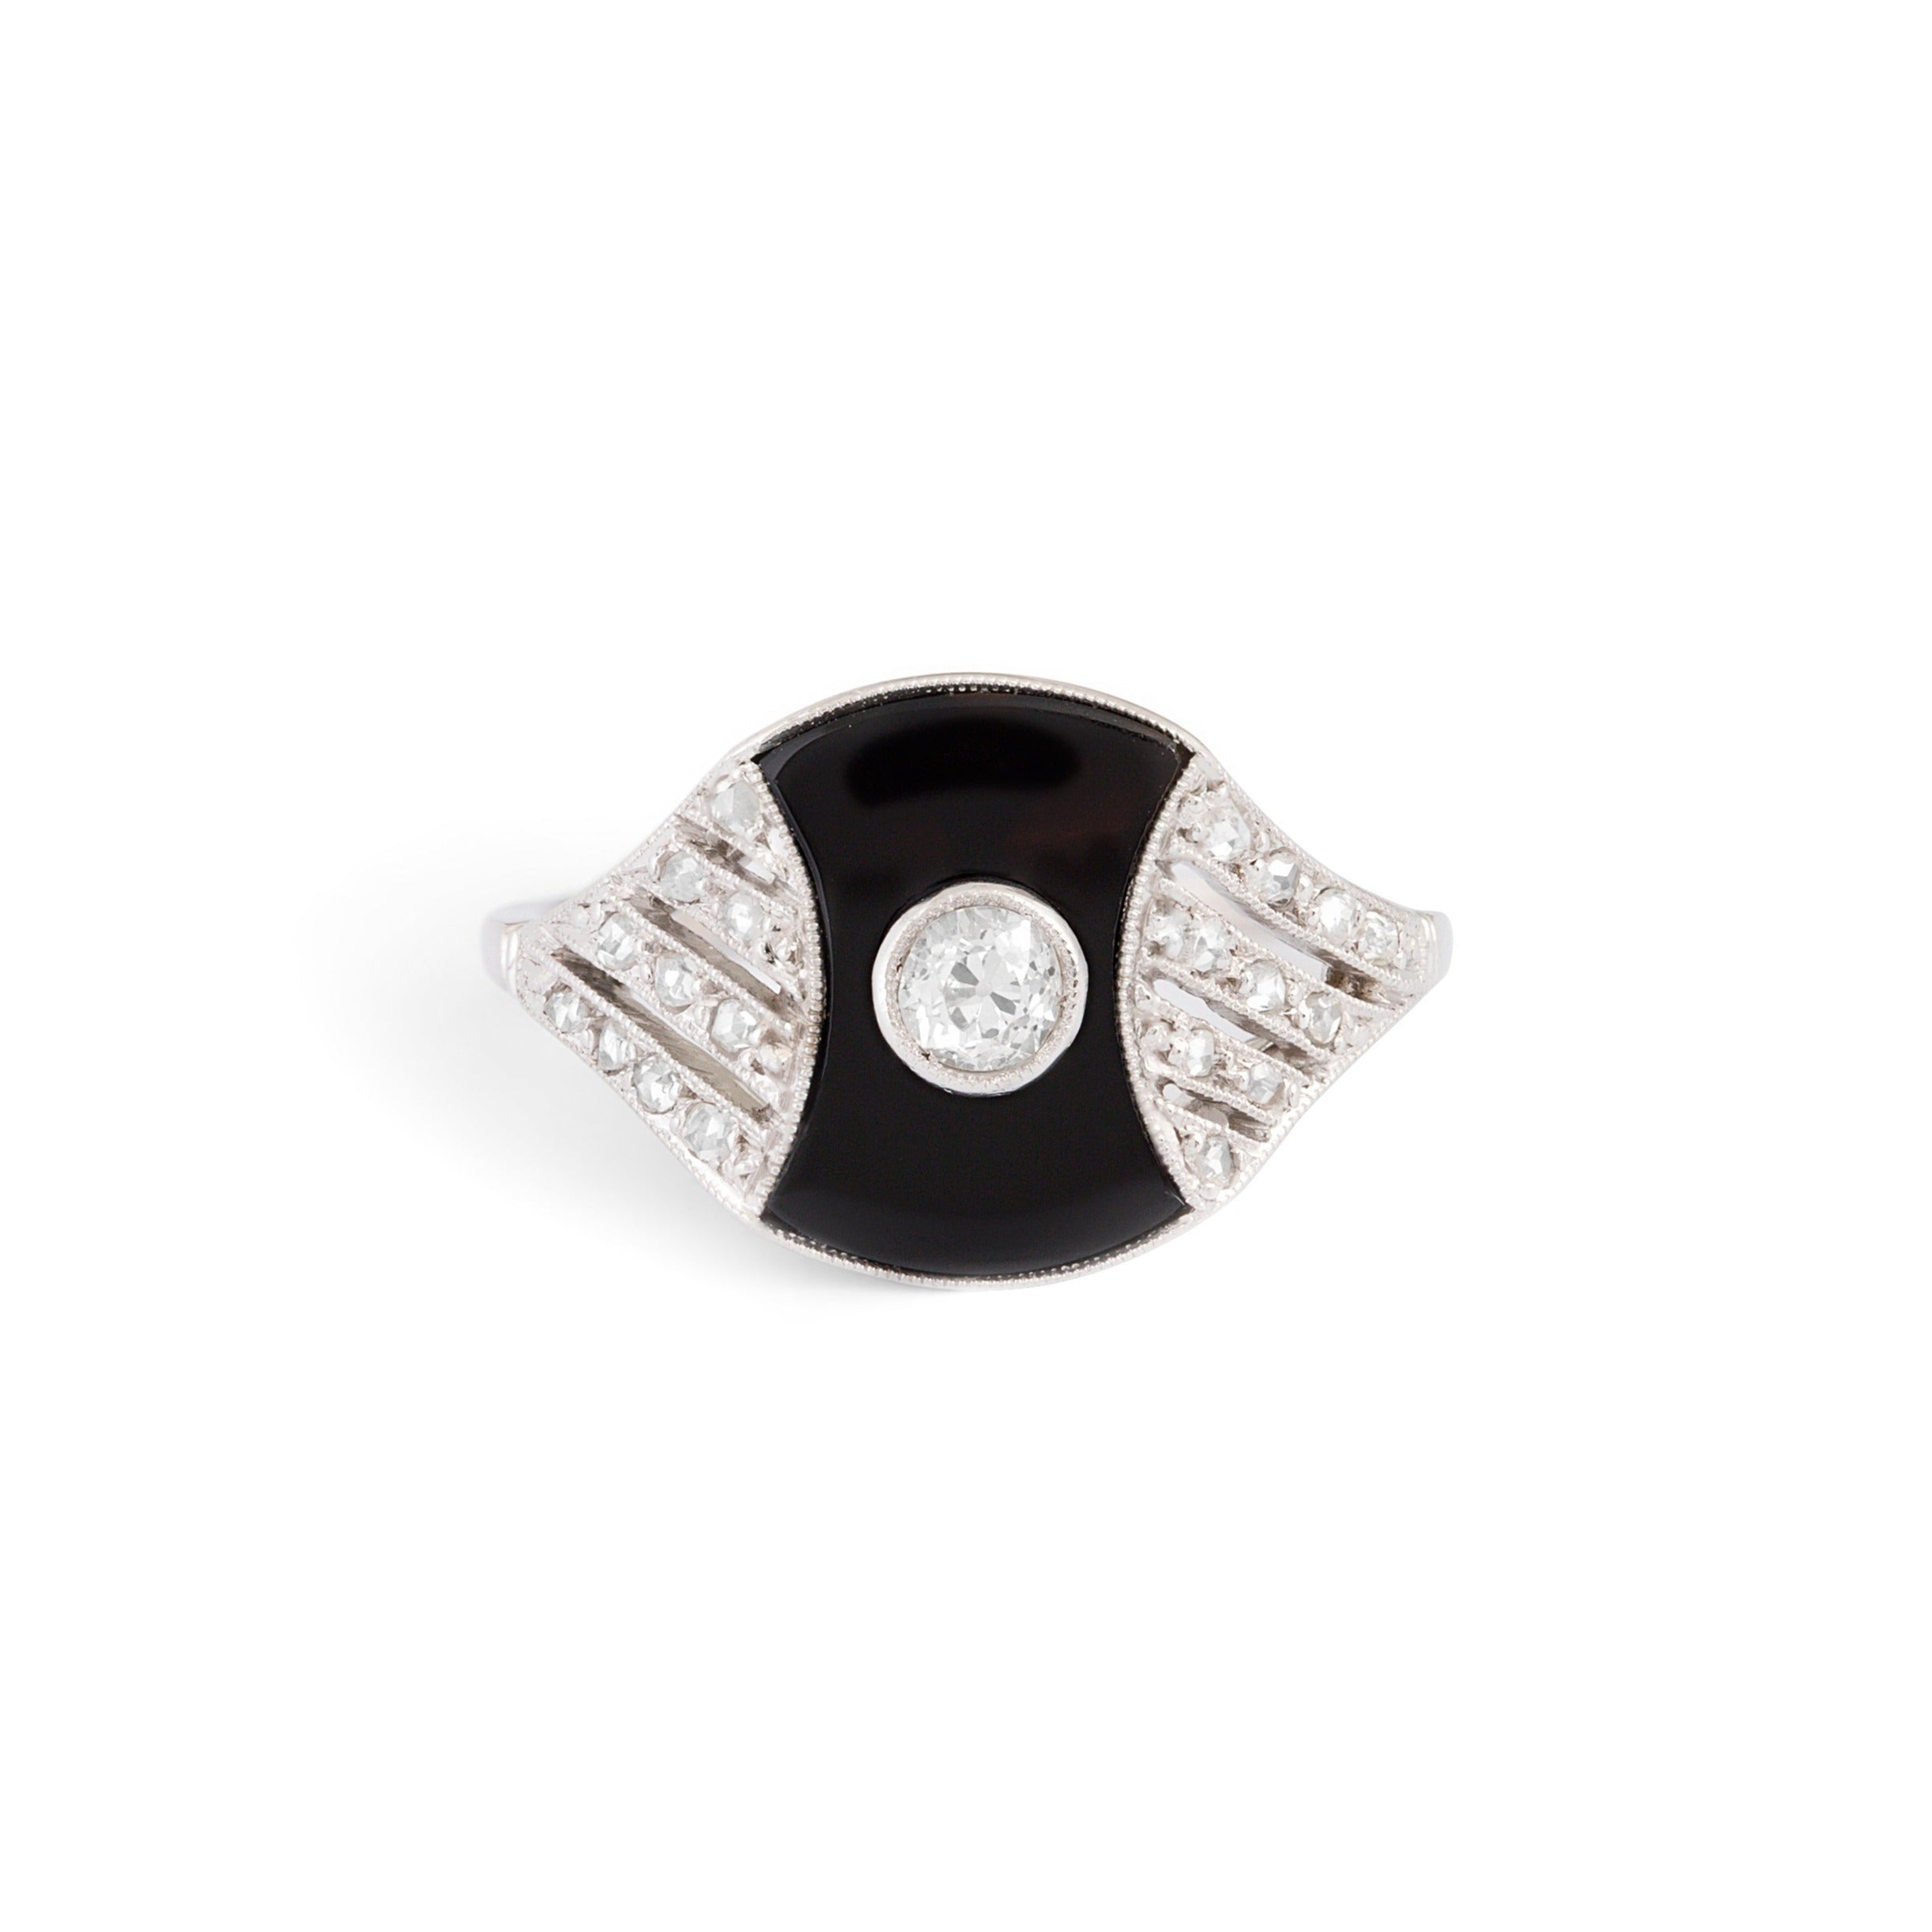 Austrian Art Deco Onyx, Diamond, and Platinum Ring